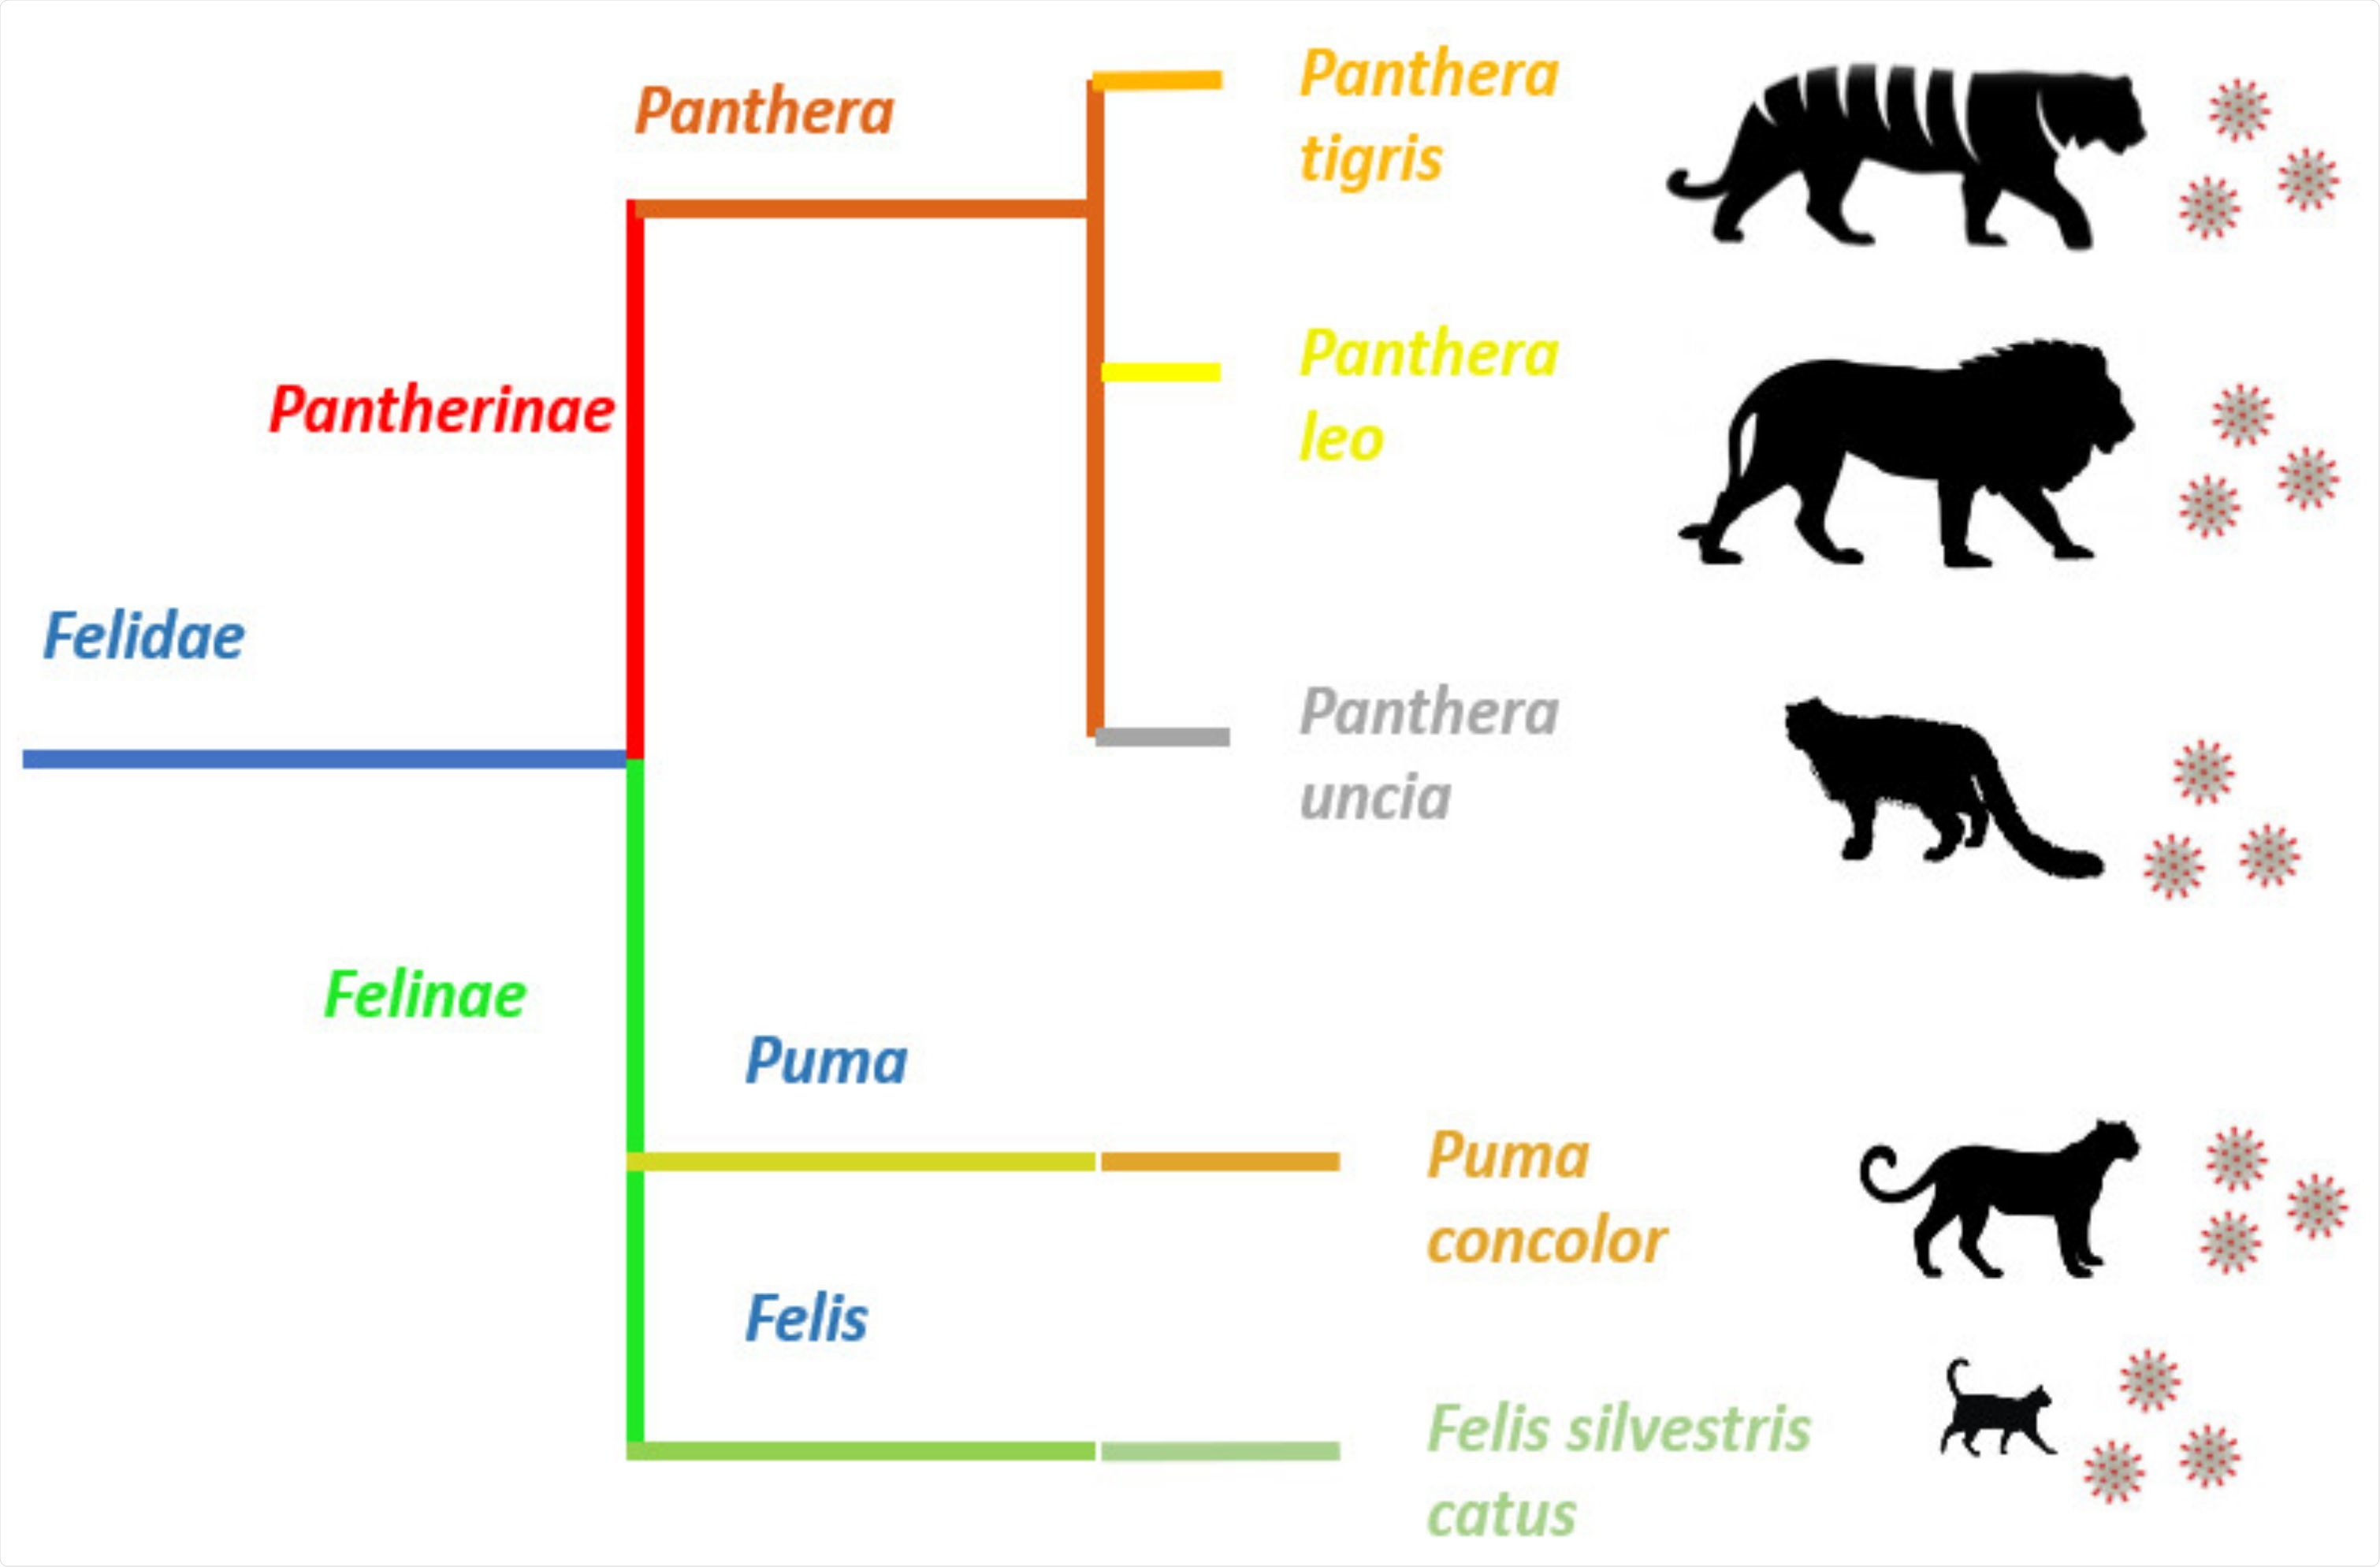 Felid species reported with SARS-CoV-2 infection.  SARS-CoV-2 infection has been reported in members of two subfamilies, Pantherinae and Felinae, belonging to the Felidae family.  Despite the obvious morphological differences between pantherids and cats, the virus is able to infect members of these two dissimilar families and cause very similar clinical symptoms.